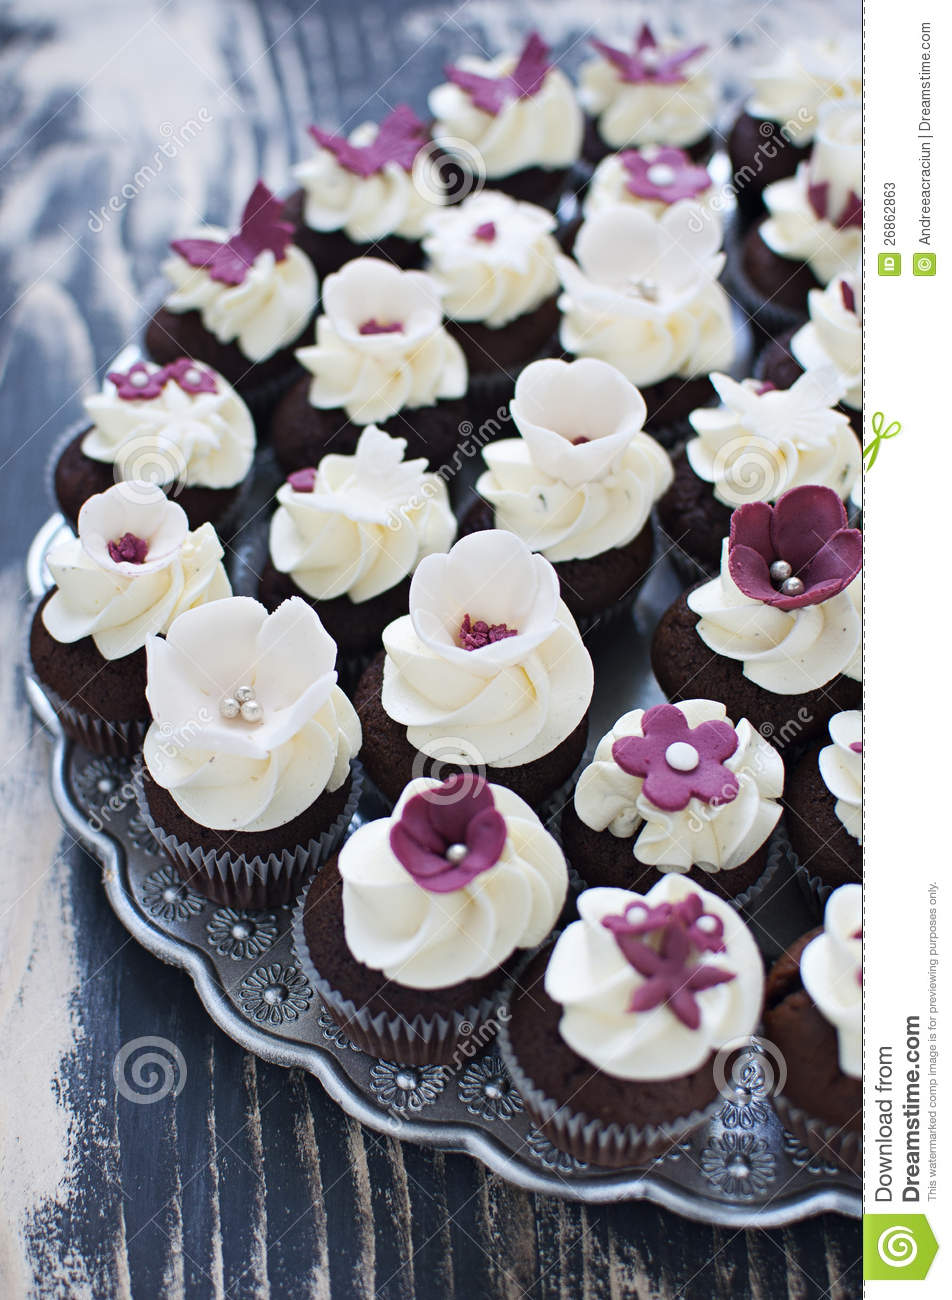 Wedding Cupcakes With Fondant Flower Decorations Stock Image Image